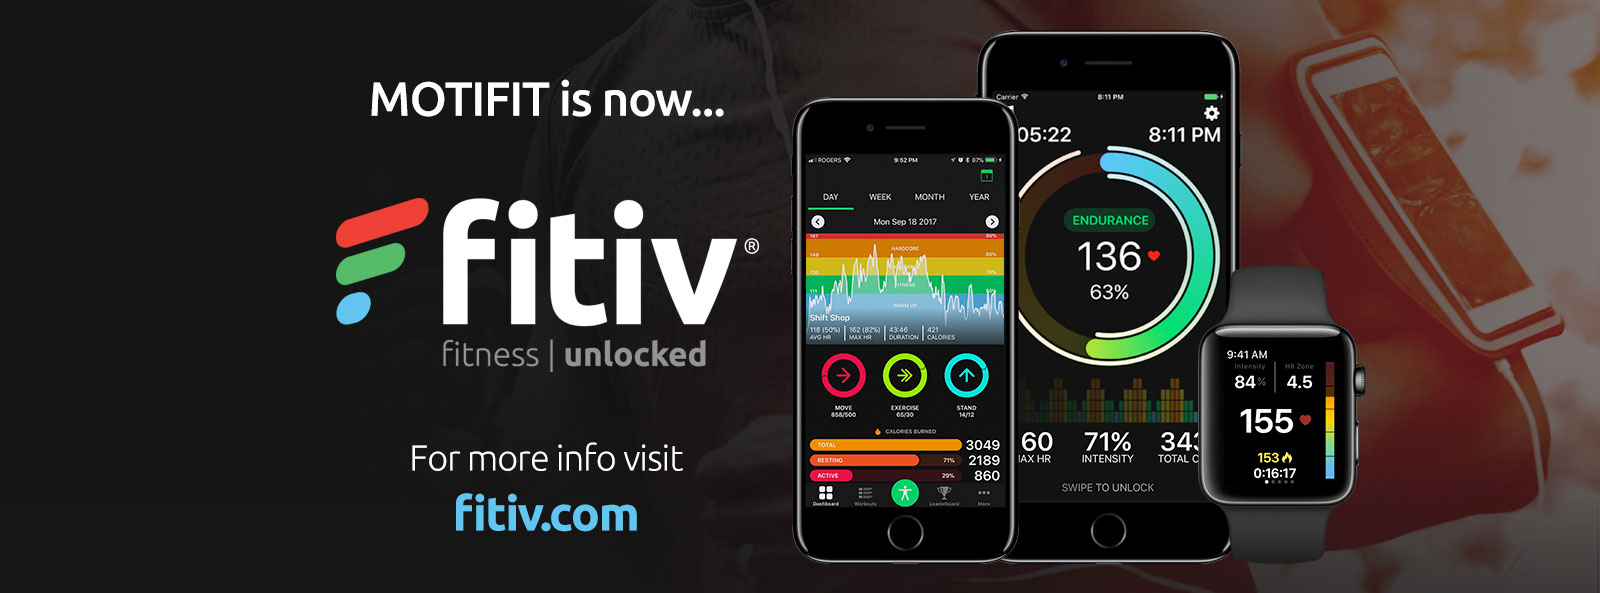 Running Jogging App Motifit App Your Fitness With Our Cardio Running Jogging